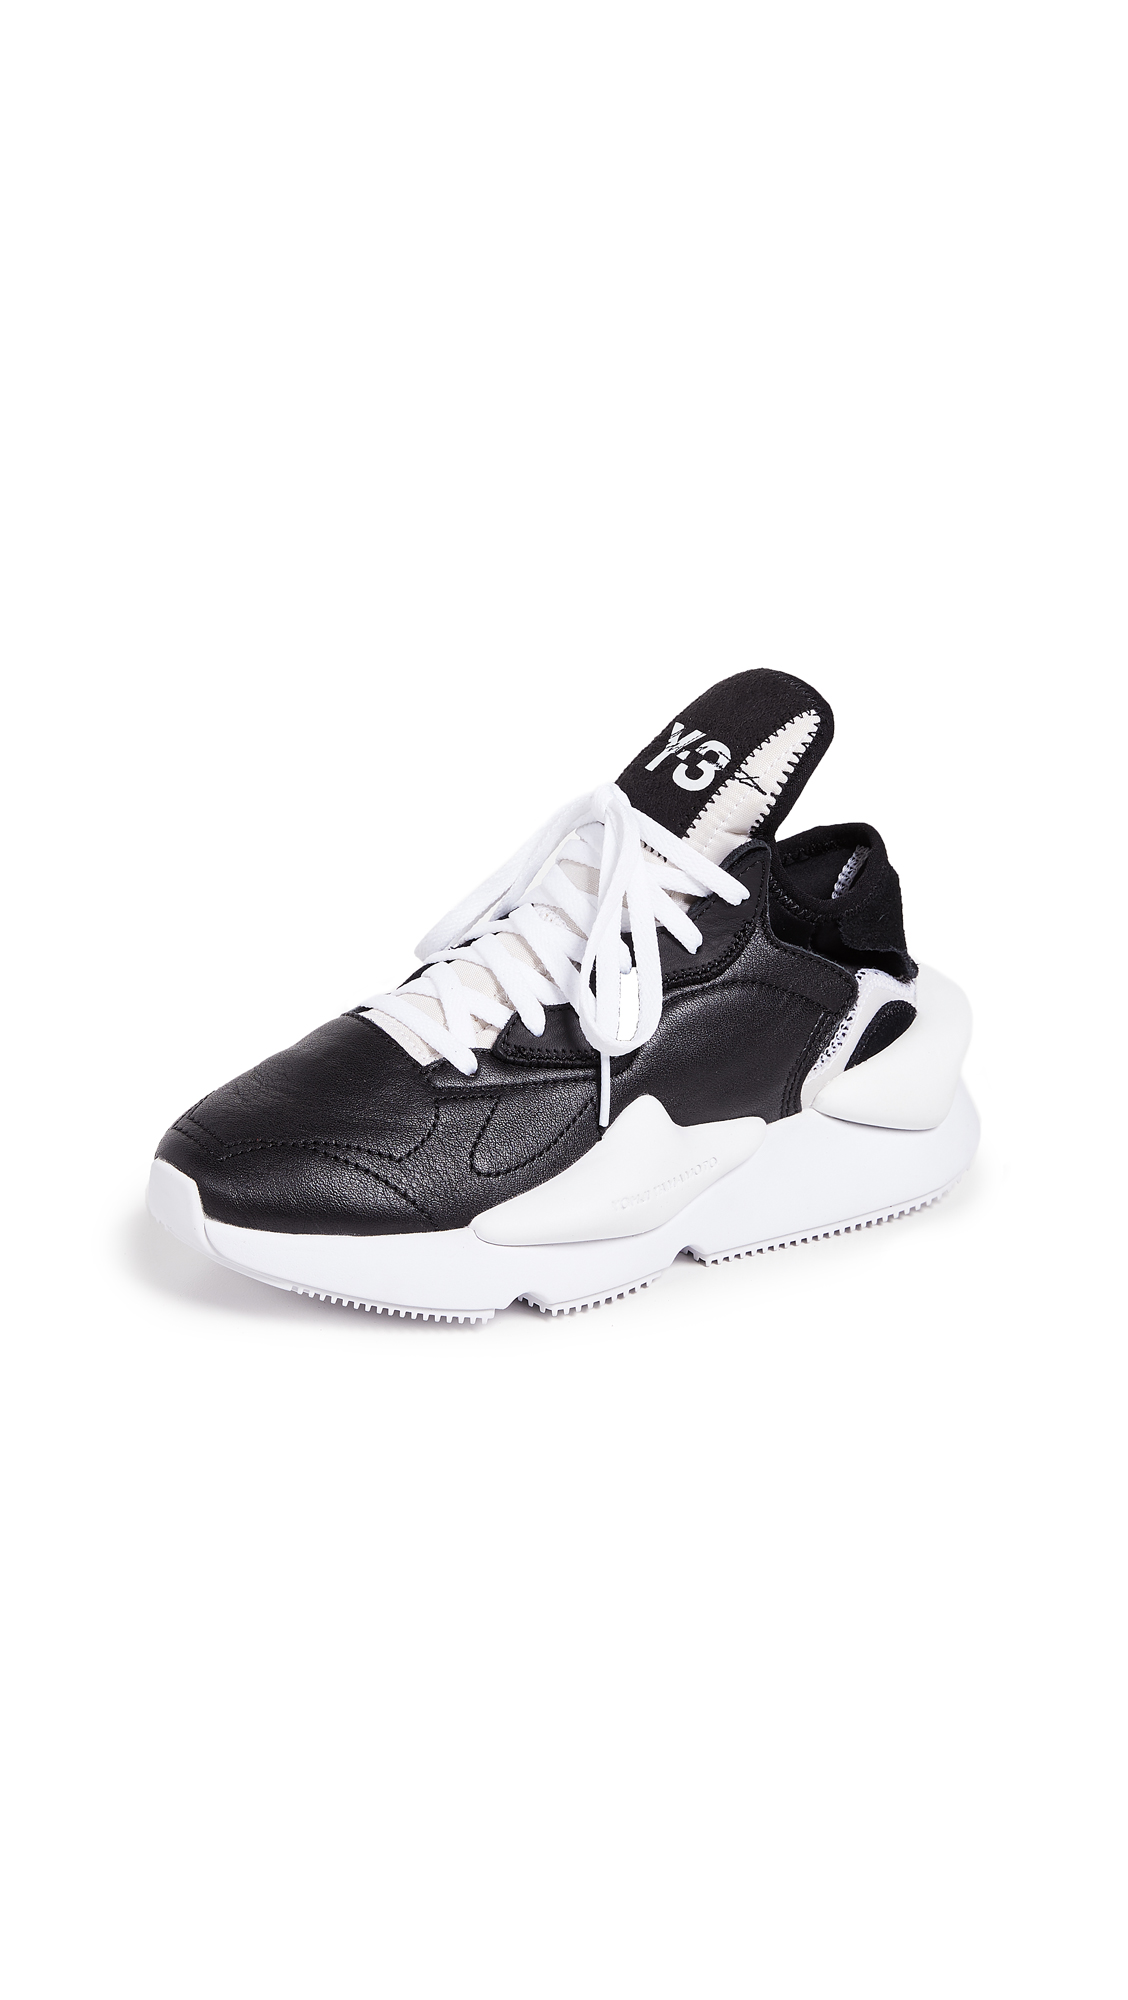 Y-3 Y-3 Kaiwa Sneakers In Black/White